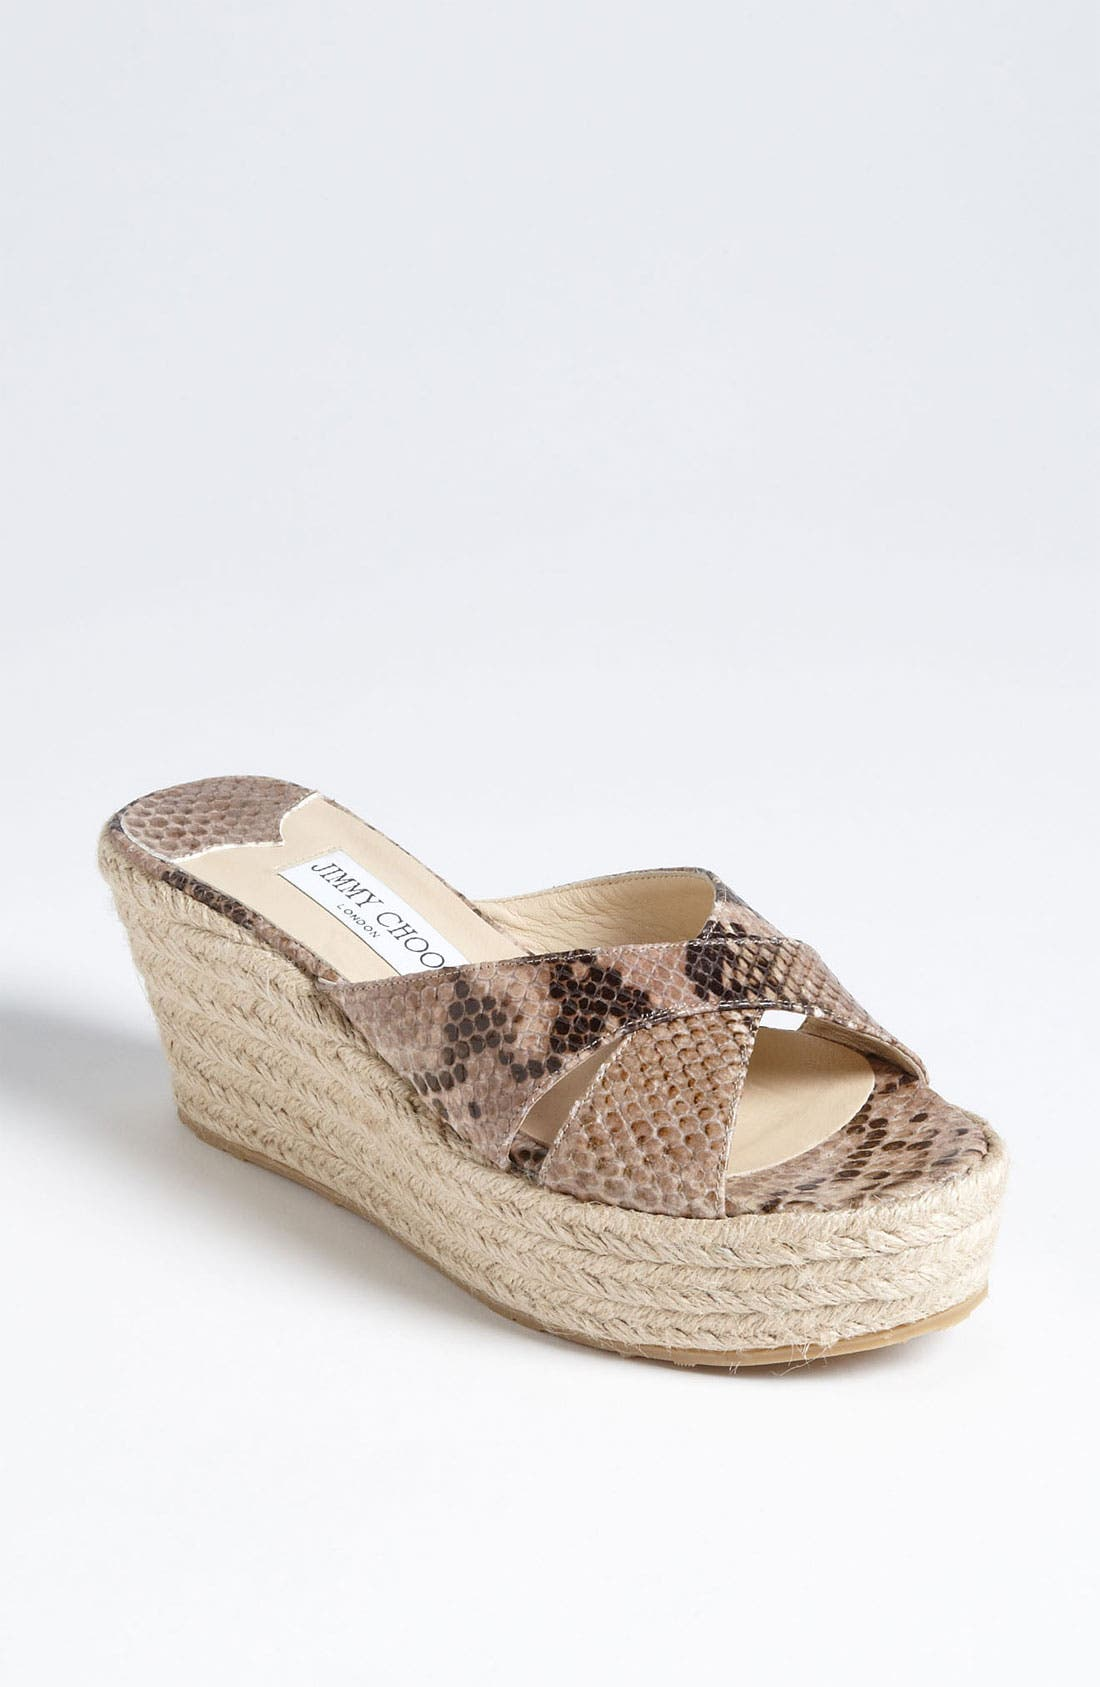 Main Image - Jimmy Choo 'Paisley' Wedge Sandal